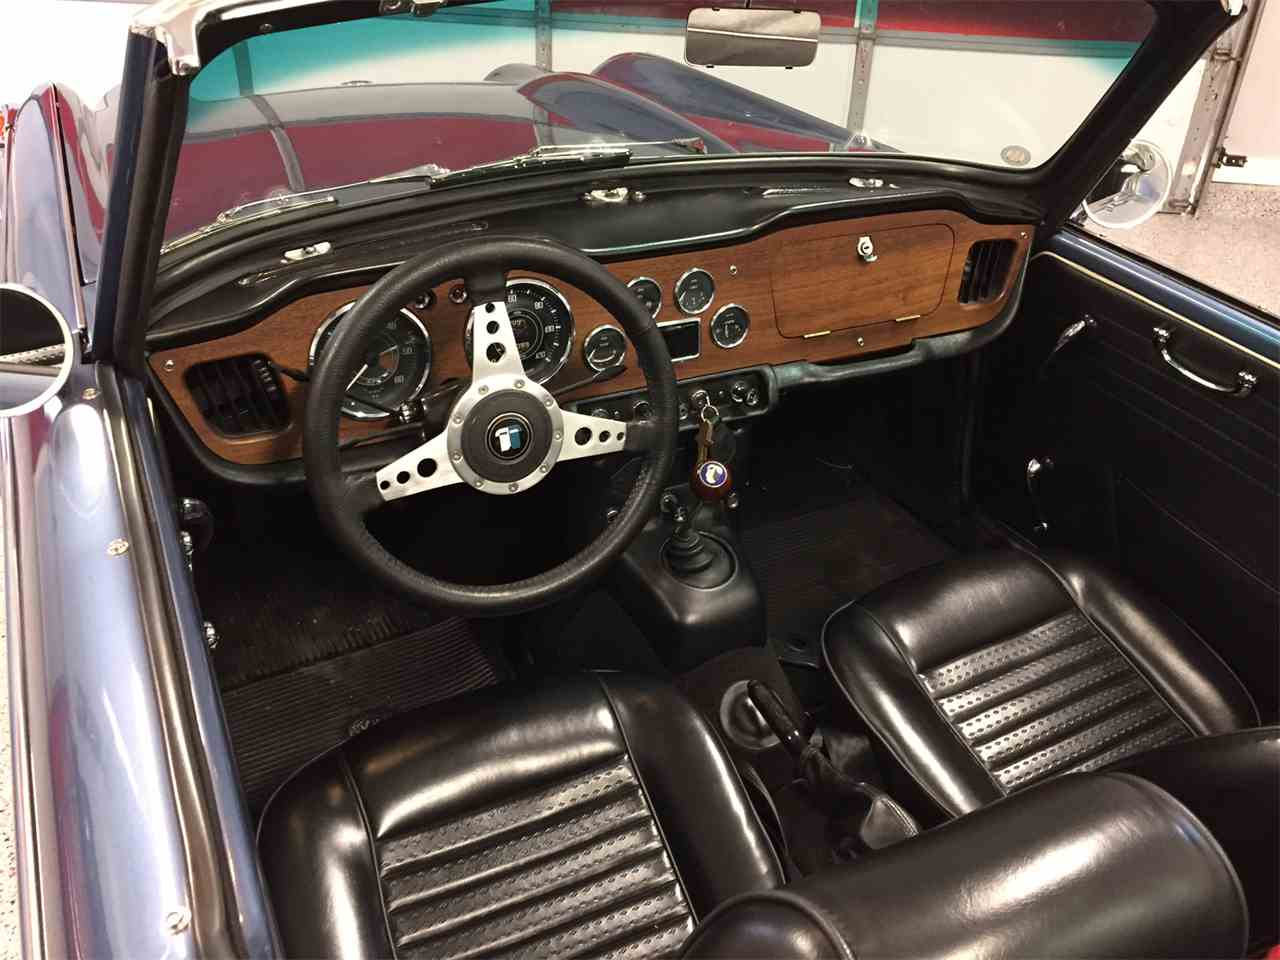 Large Picture of '66 Triumph TR4 located in Merritt Island Florida - $34,900.00 Offered by a Private Seller - LSBT